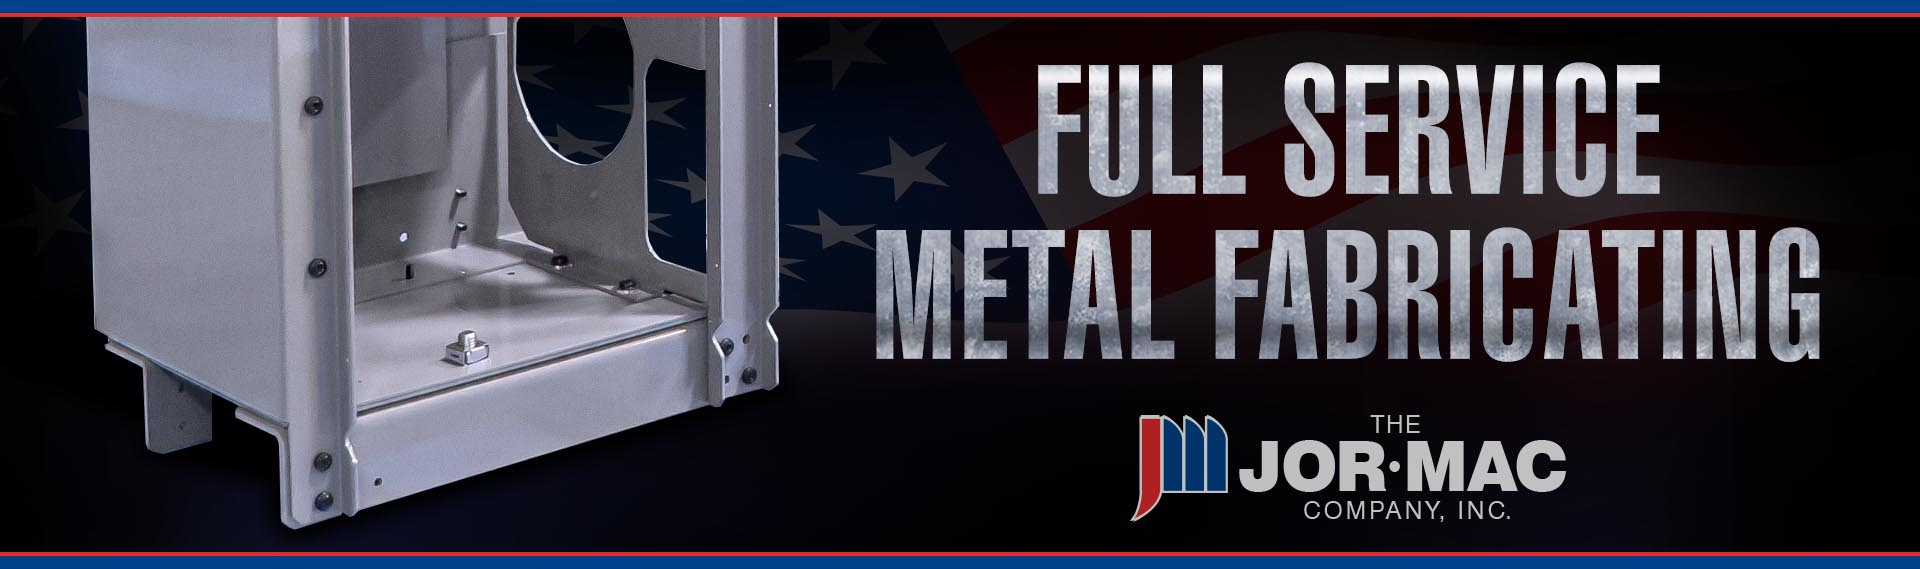 Jor-Mac Full Service Metal Fabricating